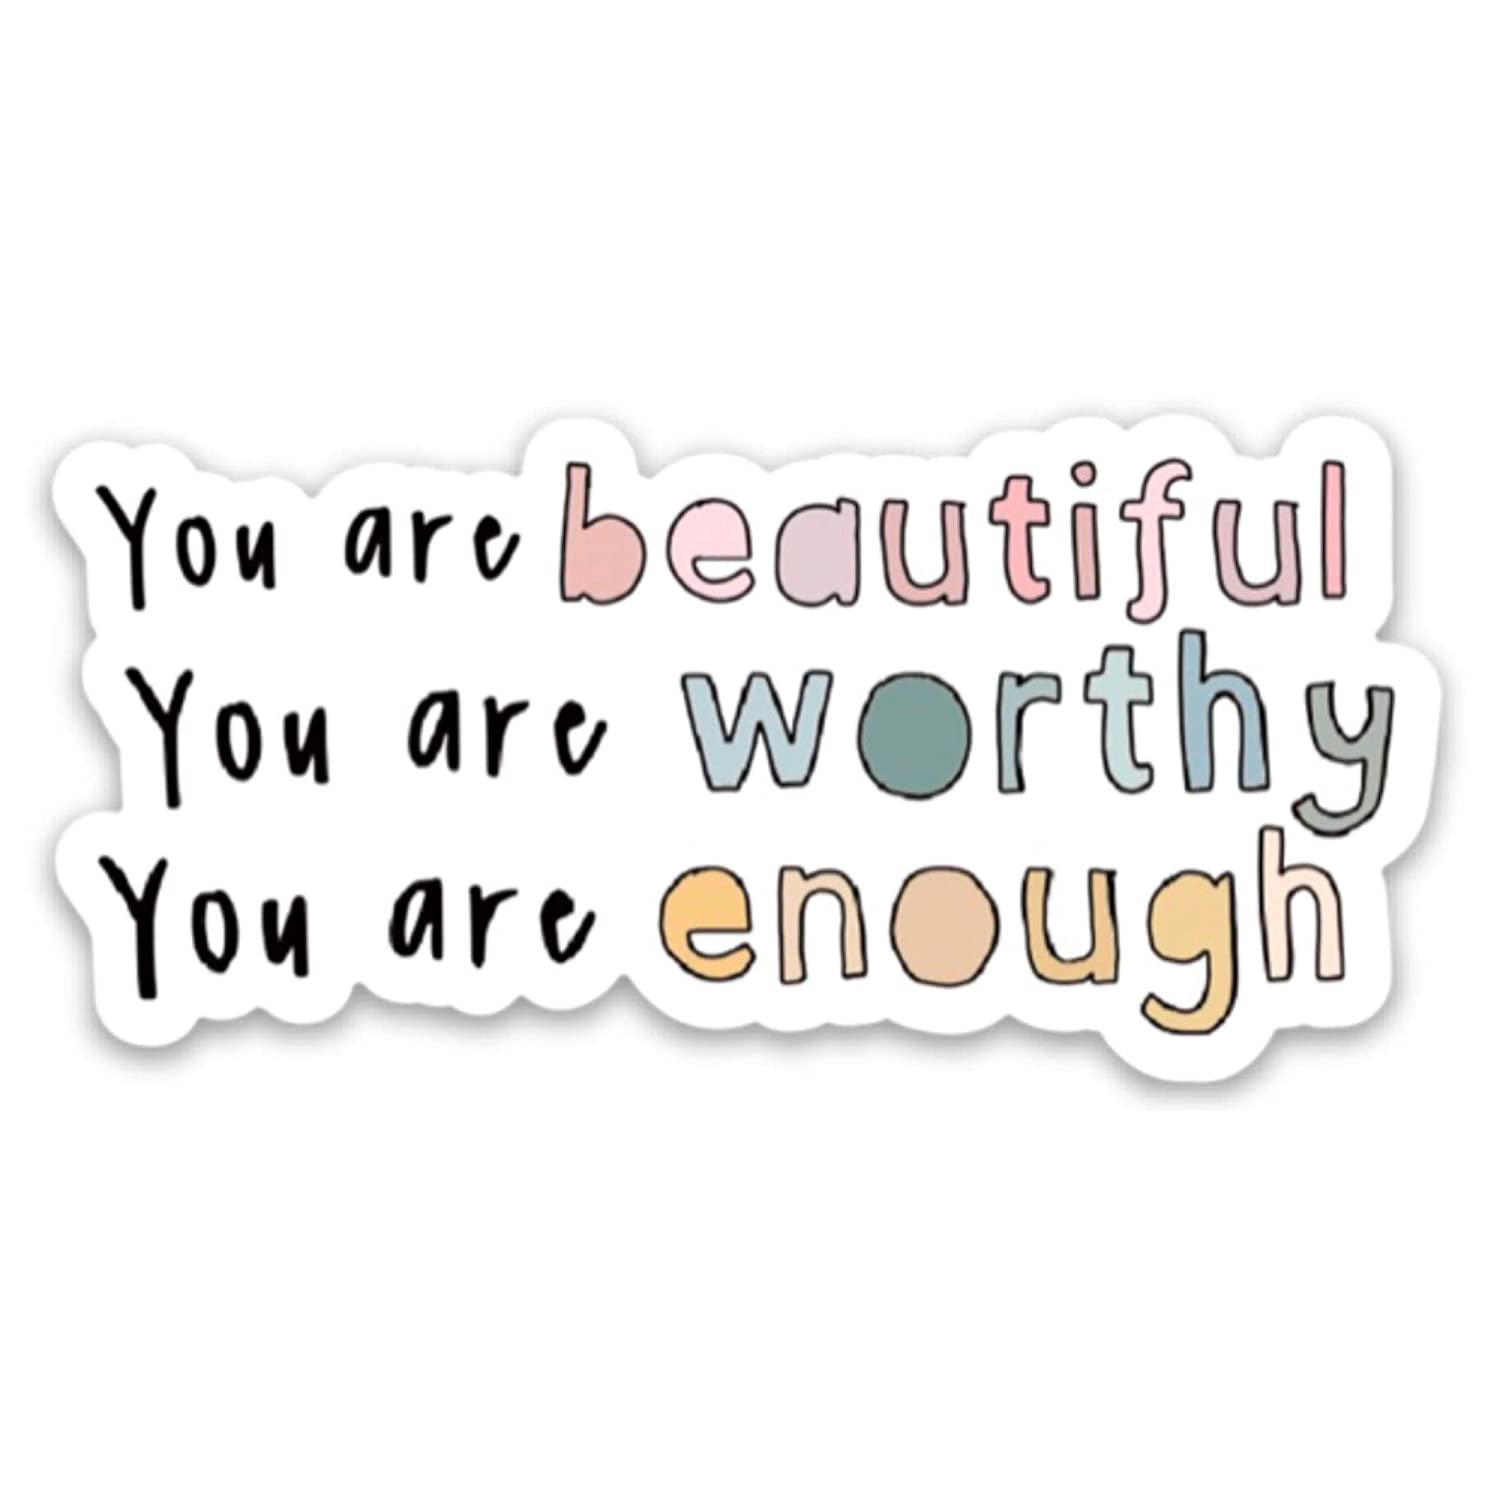 You are beautiful   Inspirational decals   Waterproof, vinyl, trendy, aesthetic stickers   Stickers for a laptop, water bottle, planner, hydro flask etc